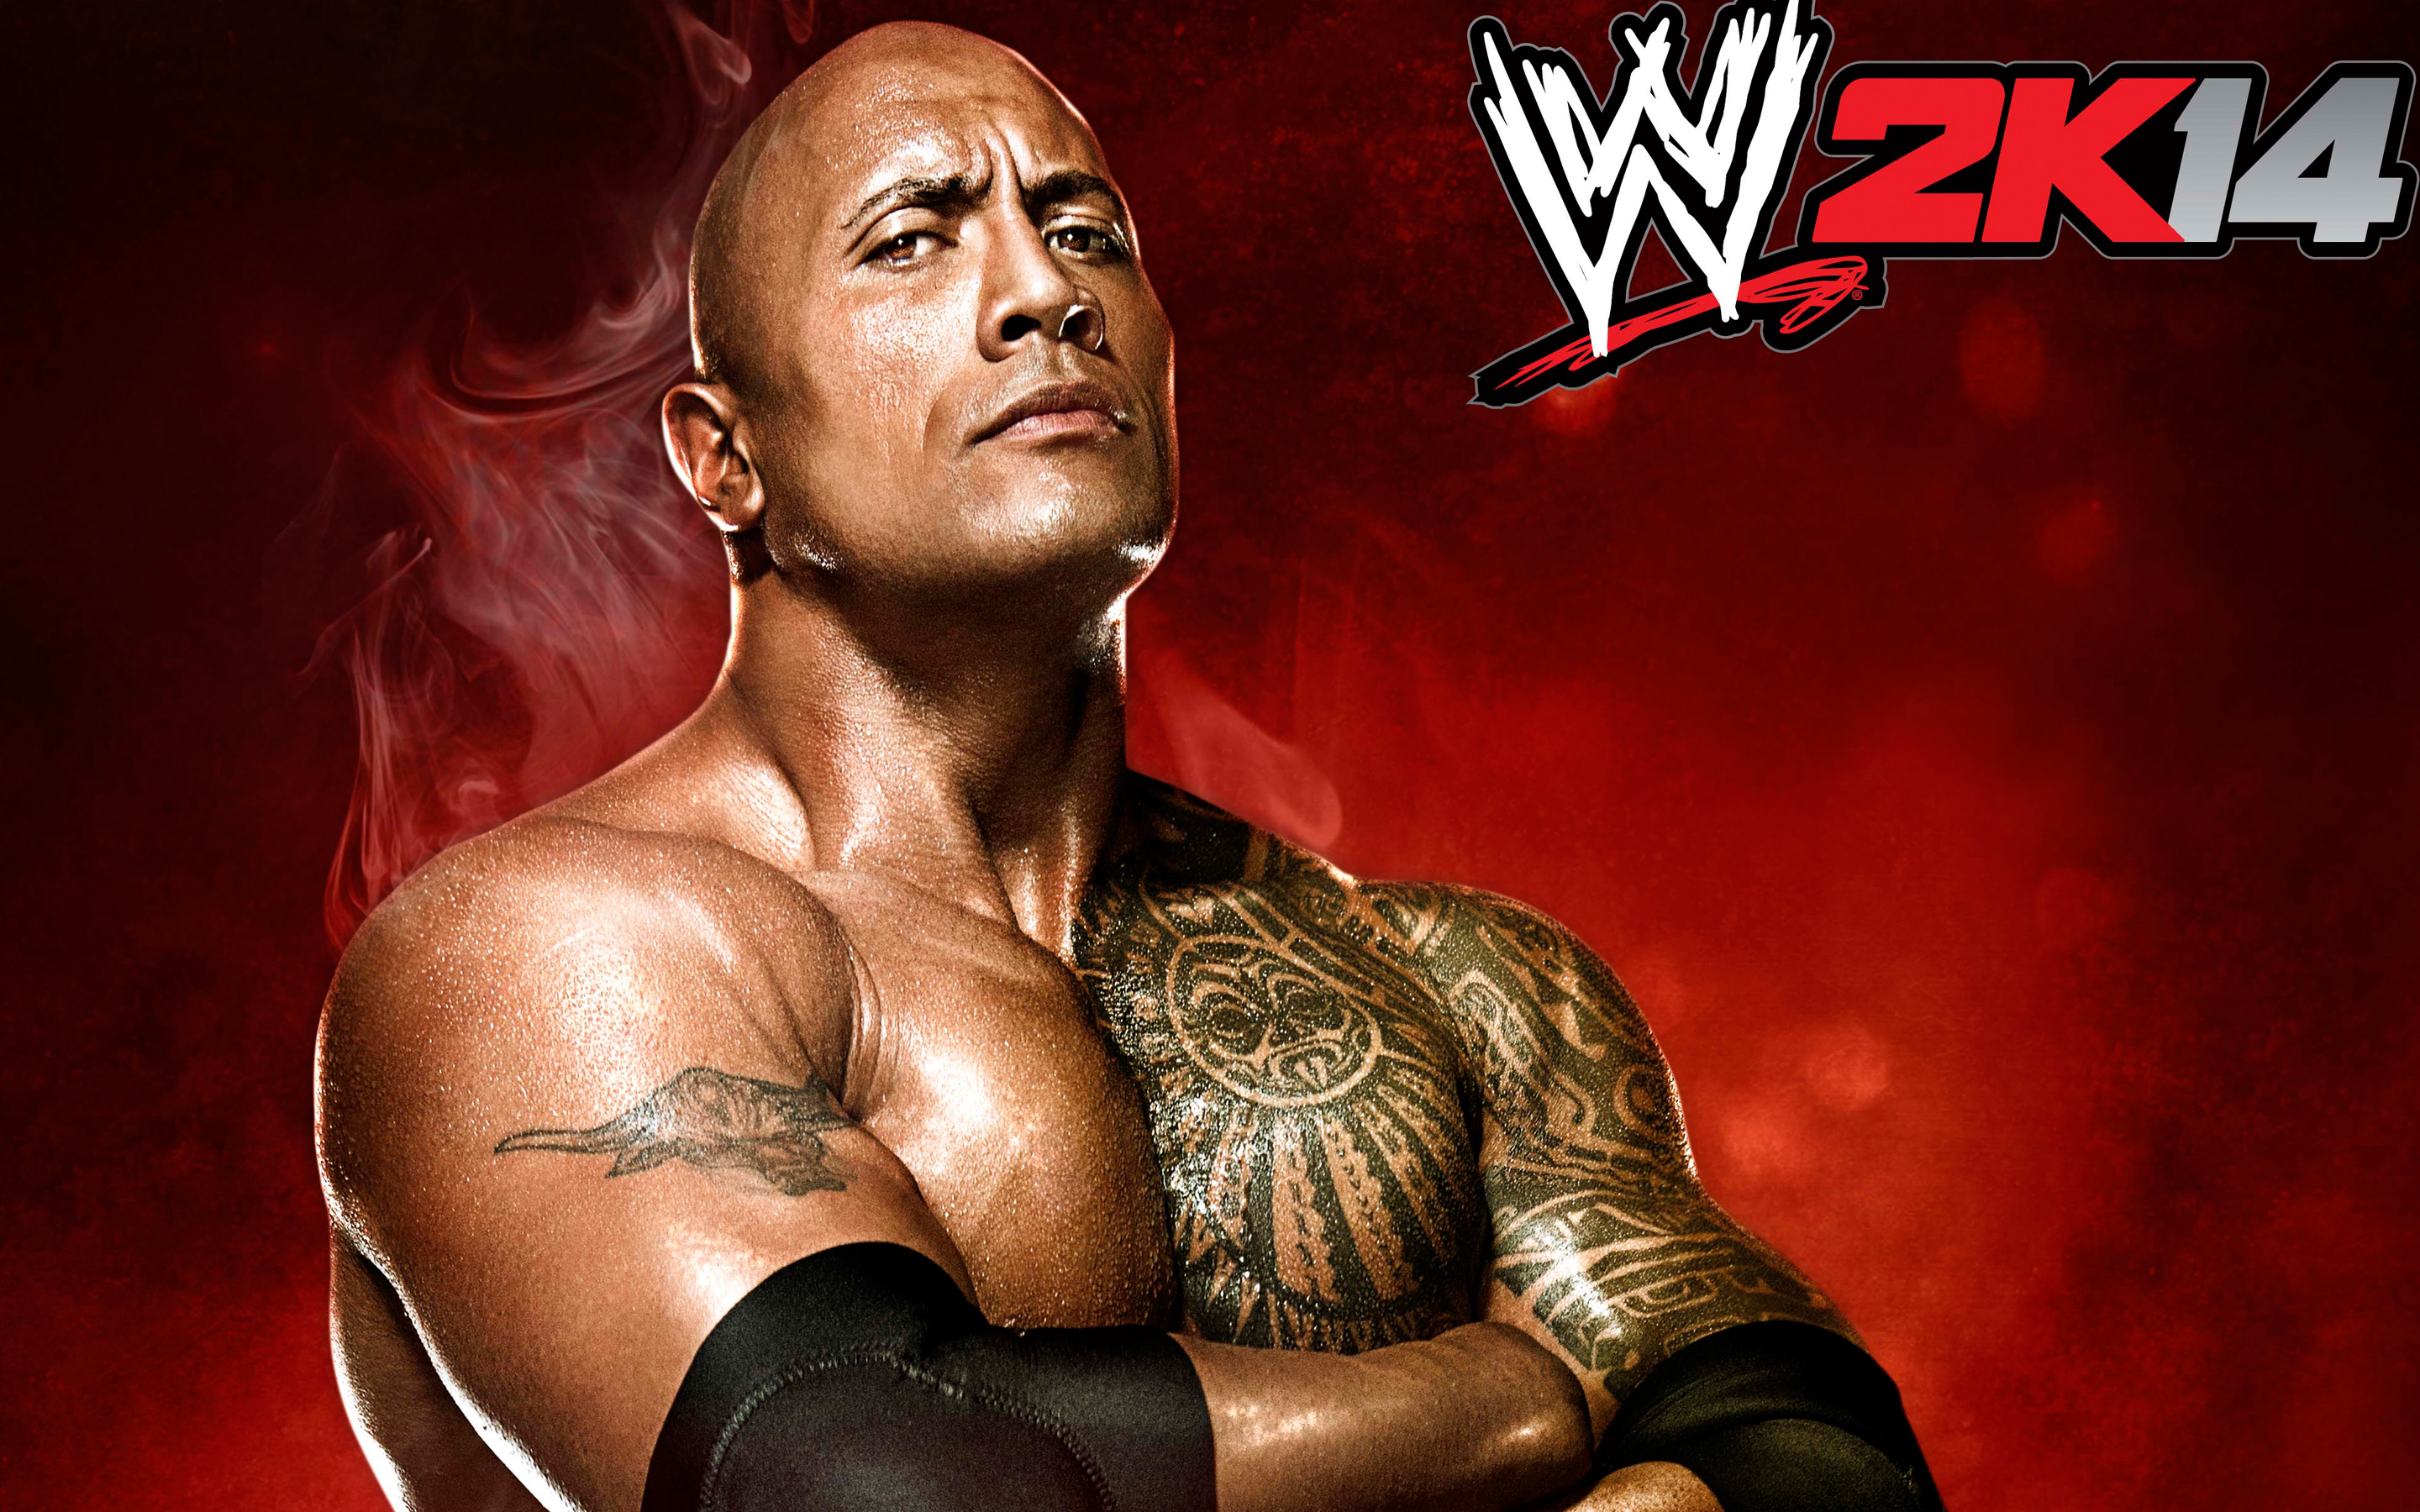 WWE 2K14 Game Wallpapers HD Wallpapers 2880x1800